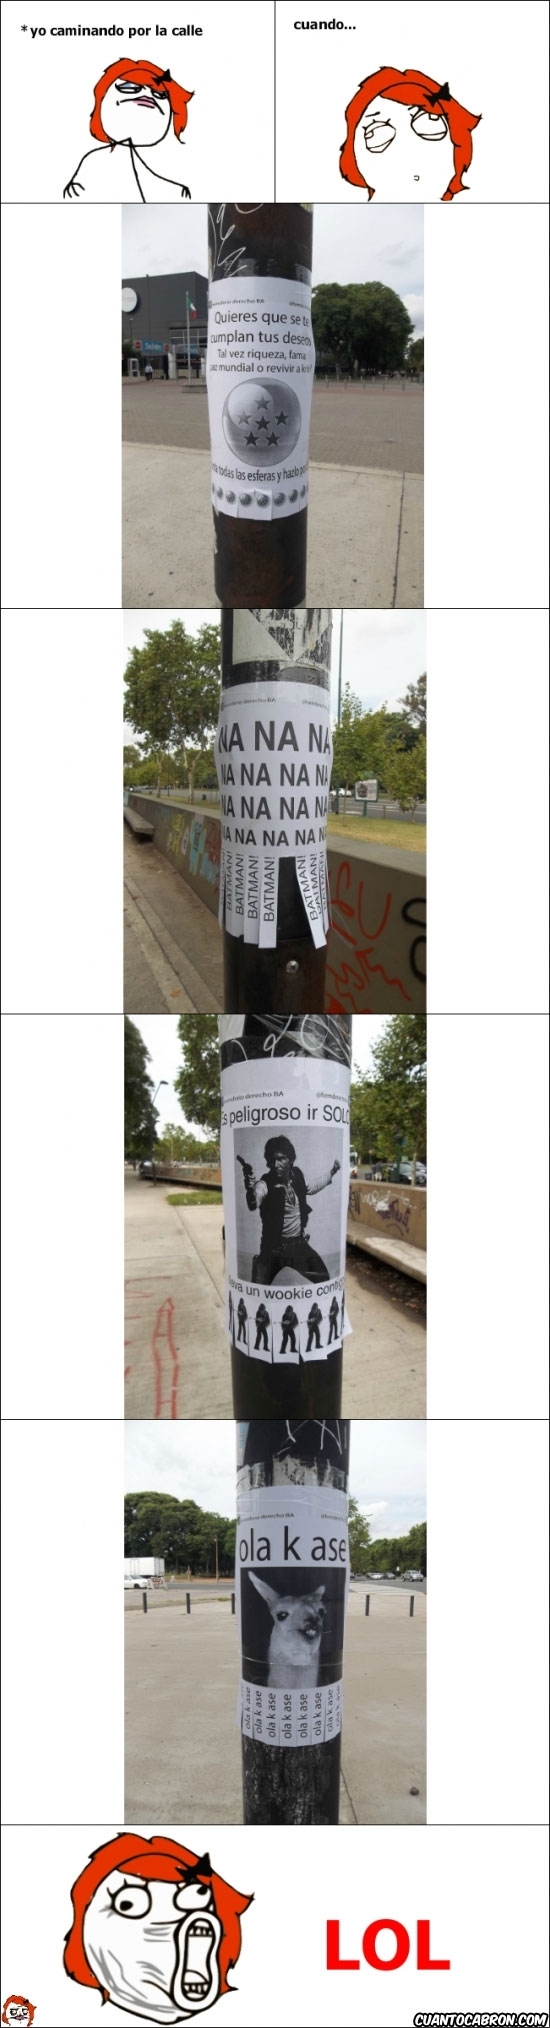 Lol - No pararé hasta encontrar esta calle